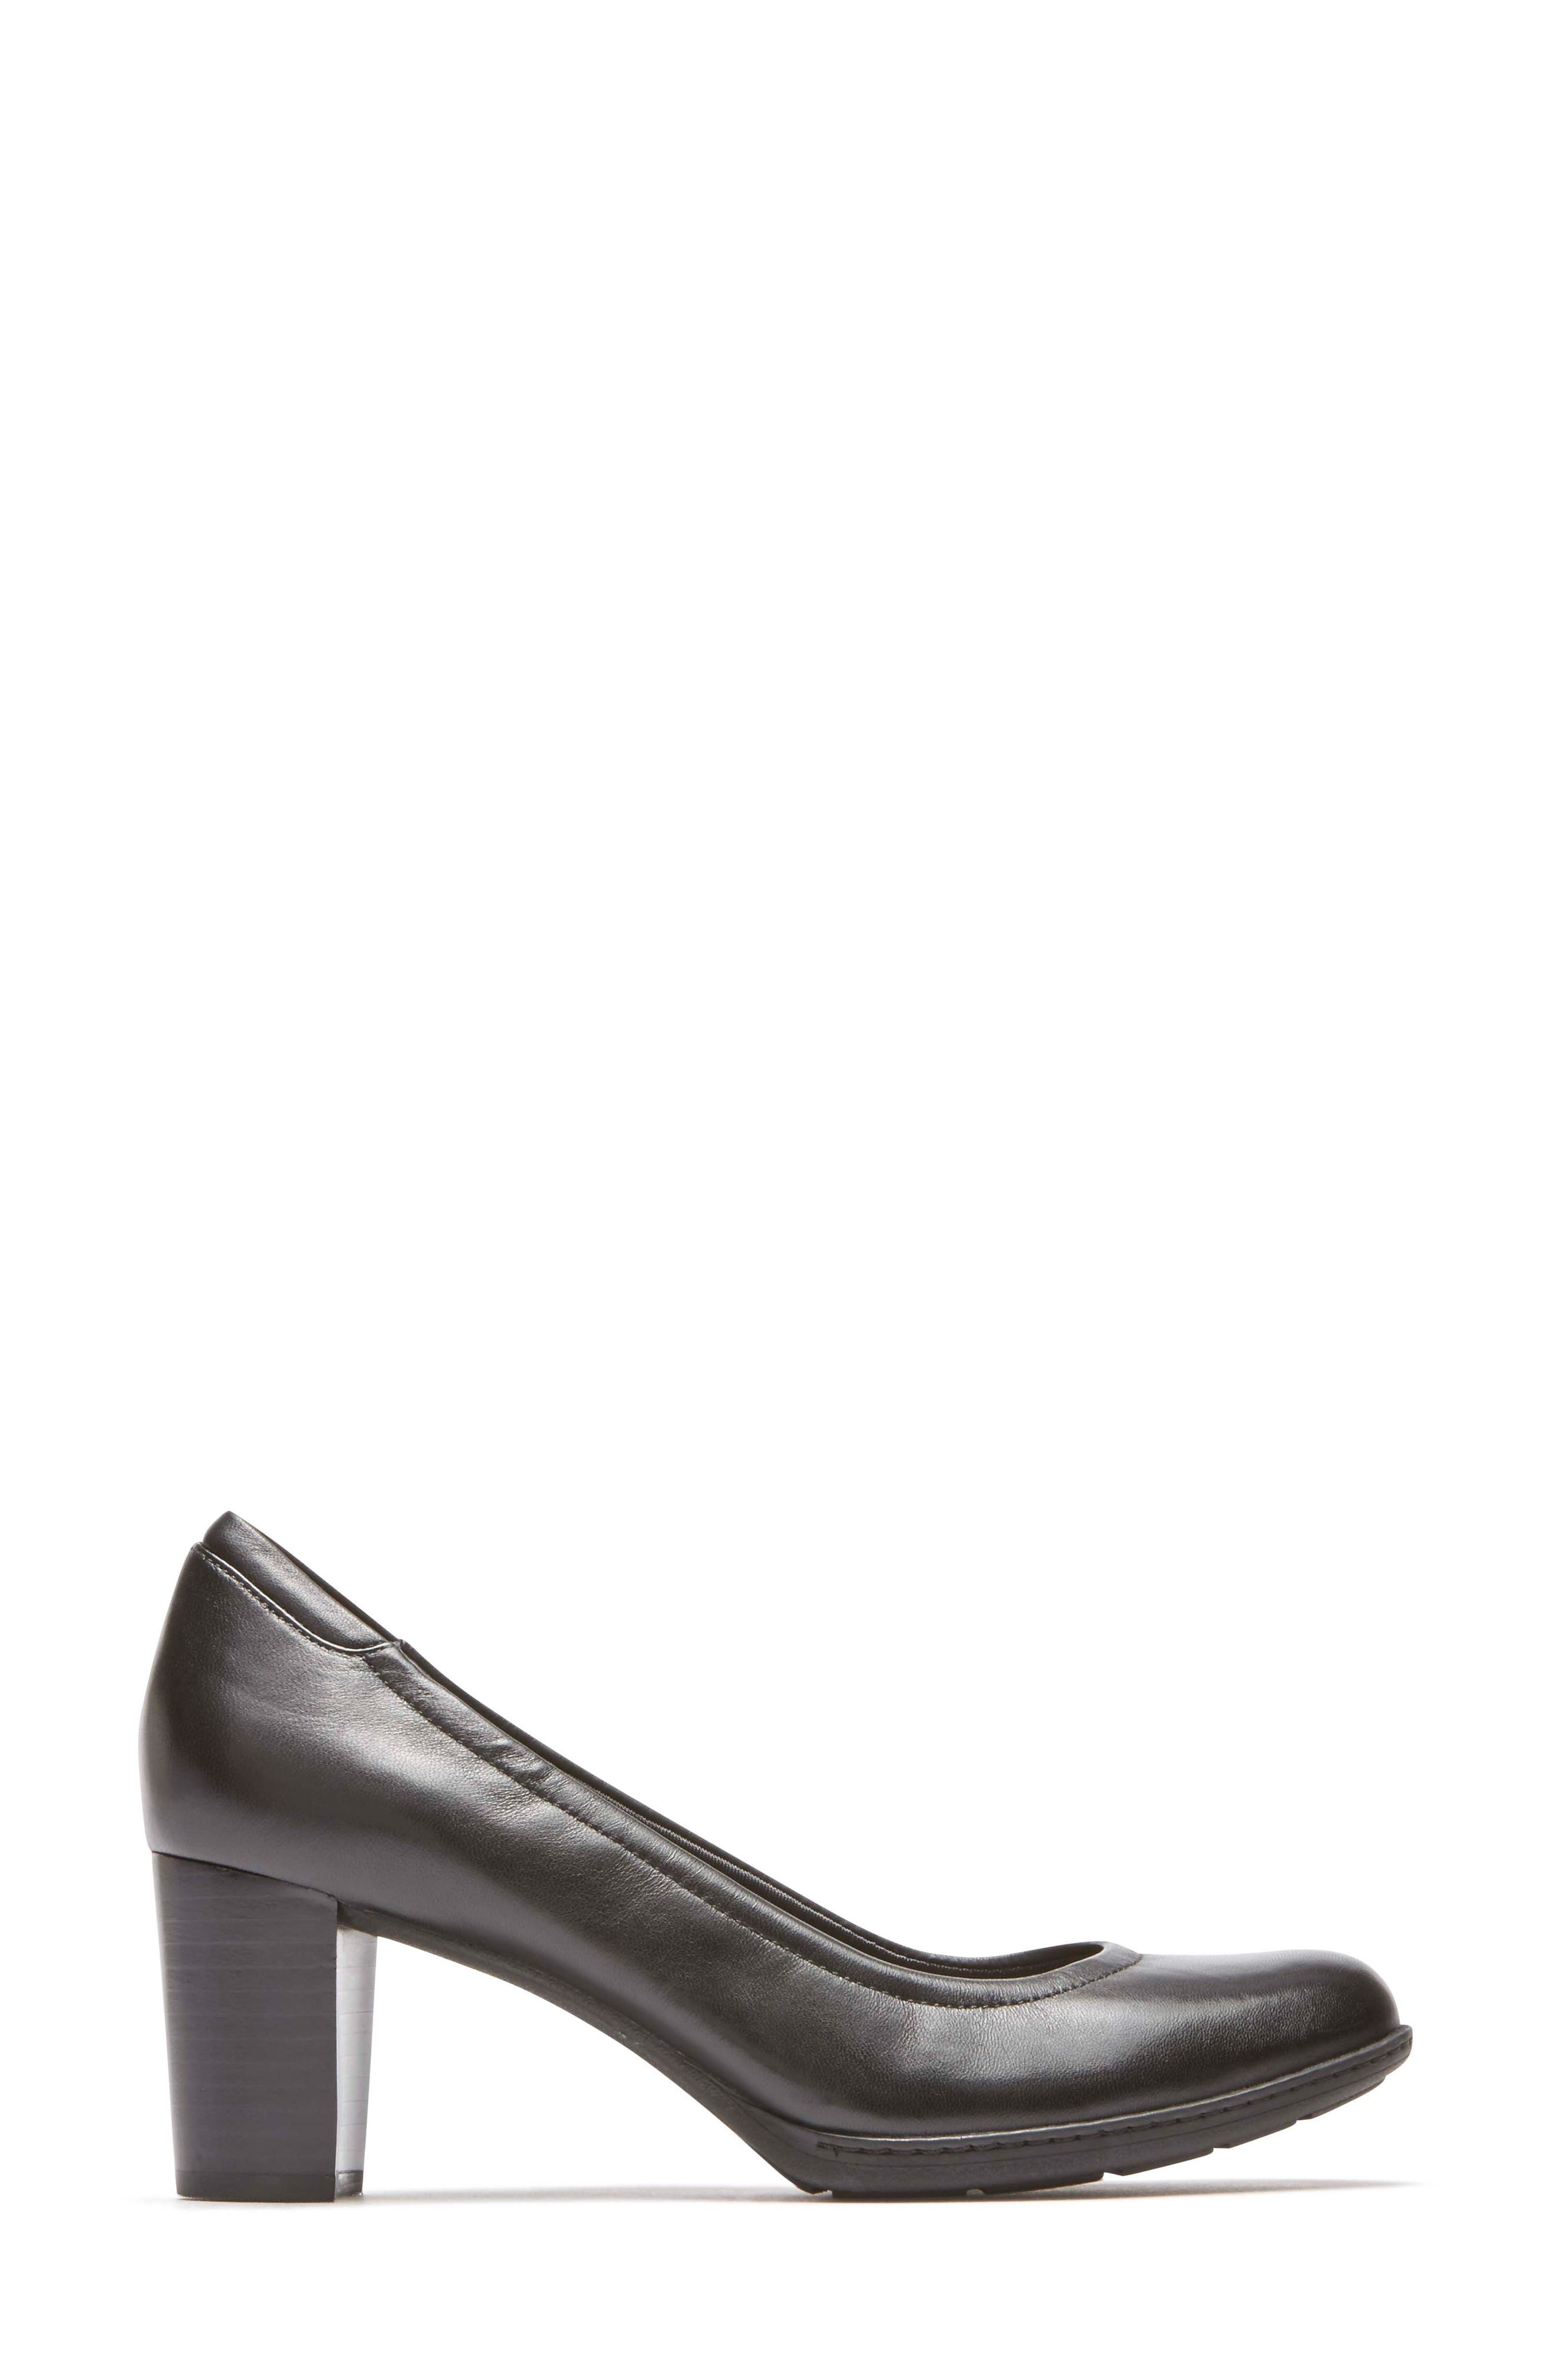 Chaya Round Toe Pump,                             Alternate thumbnail 3, color,                             BLACK LEATHER